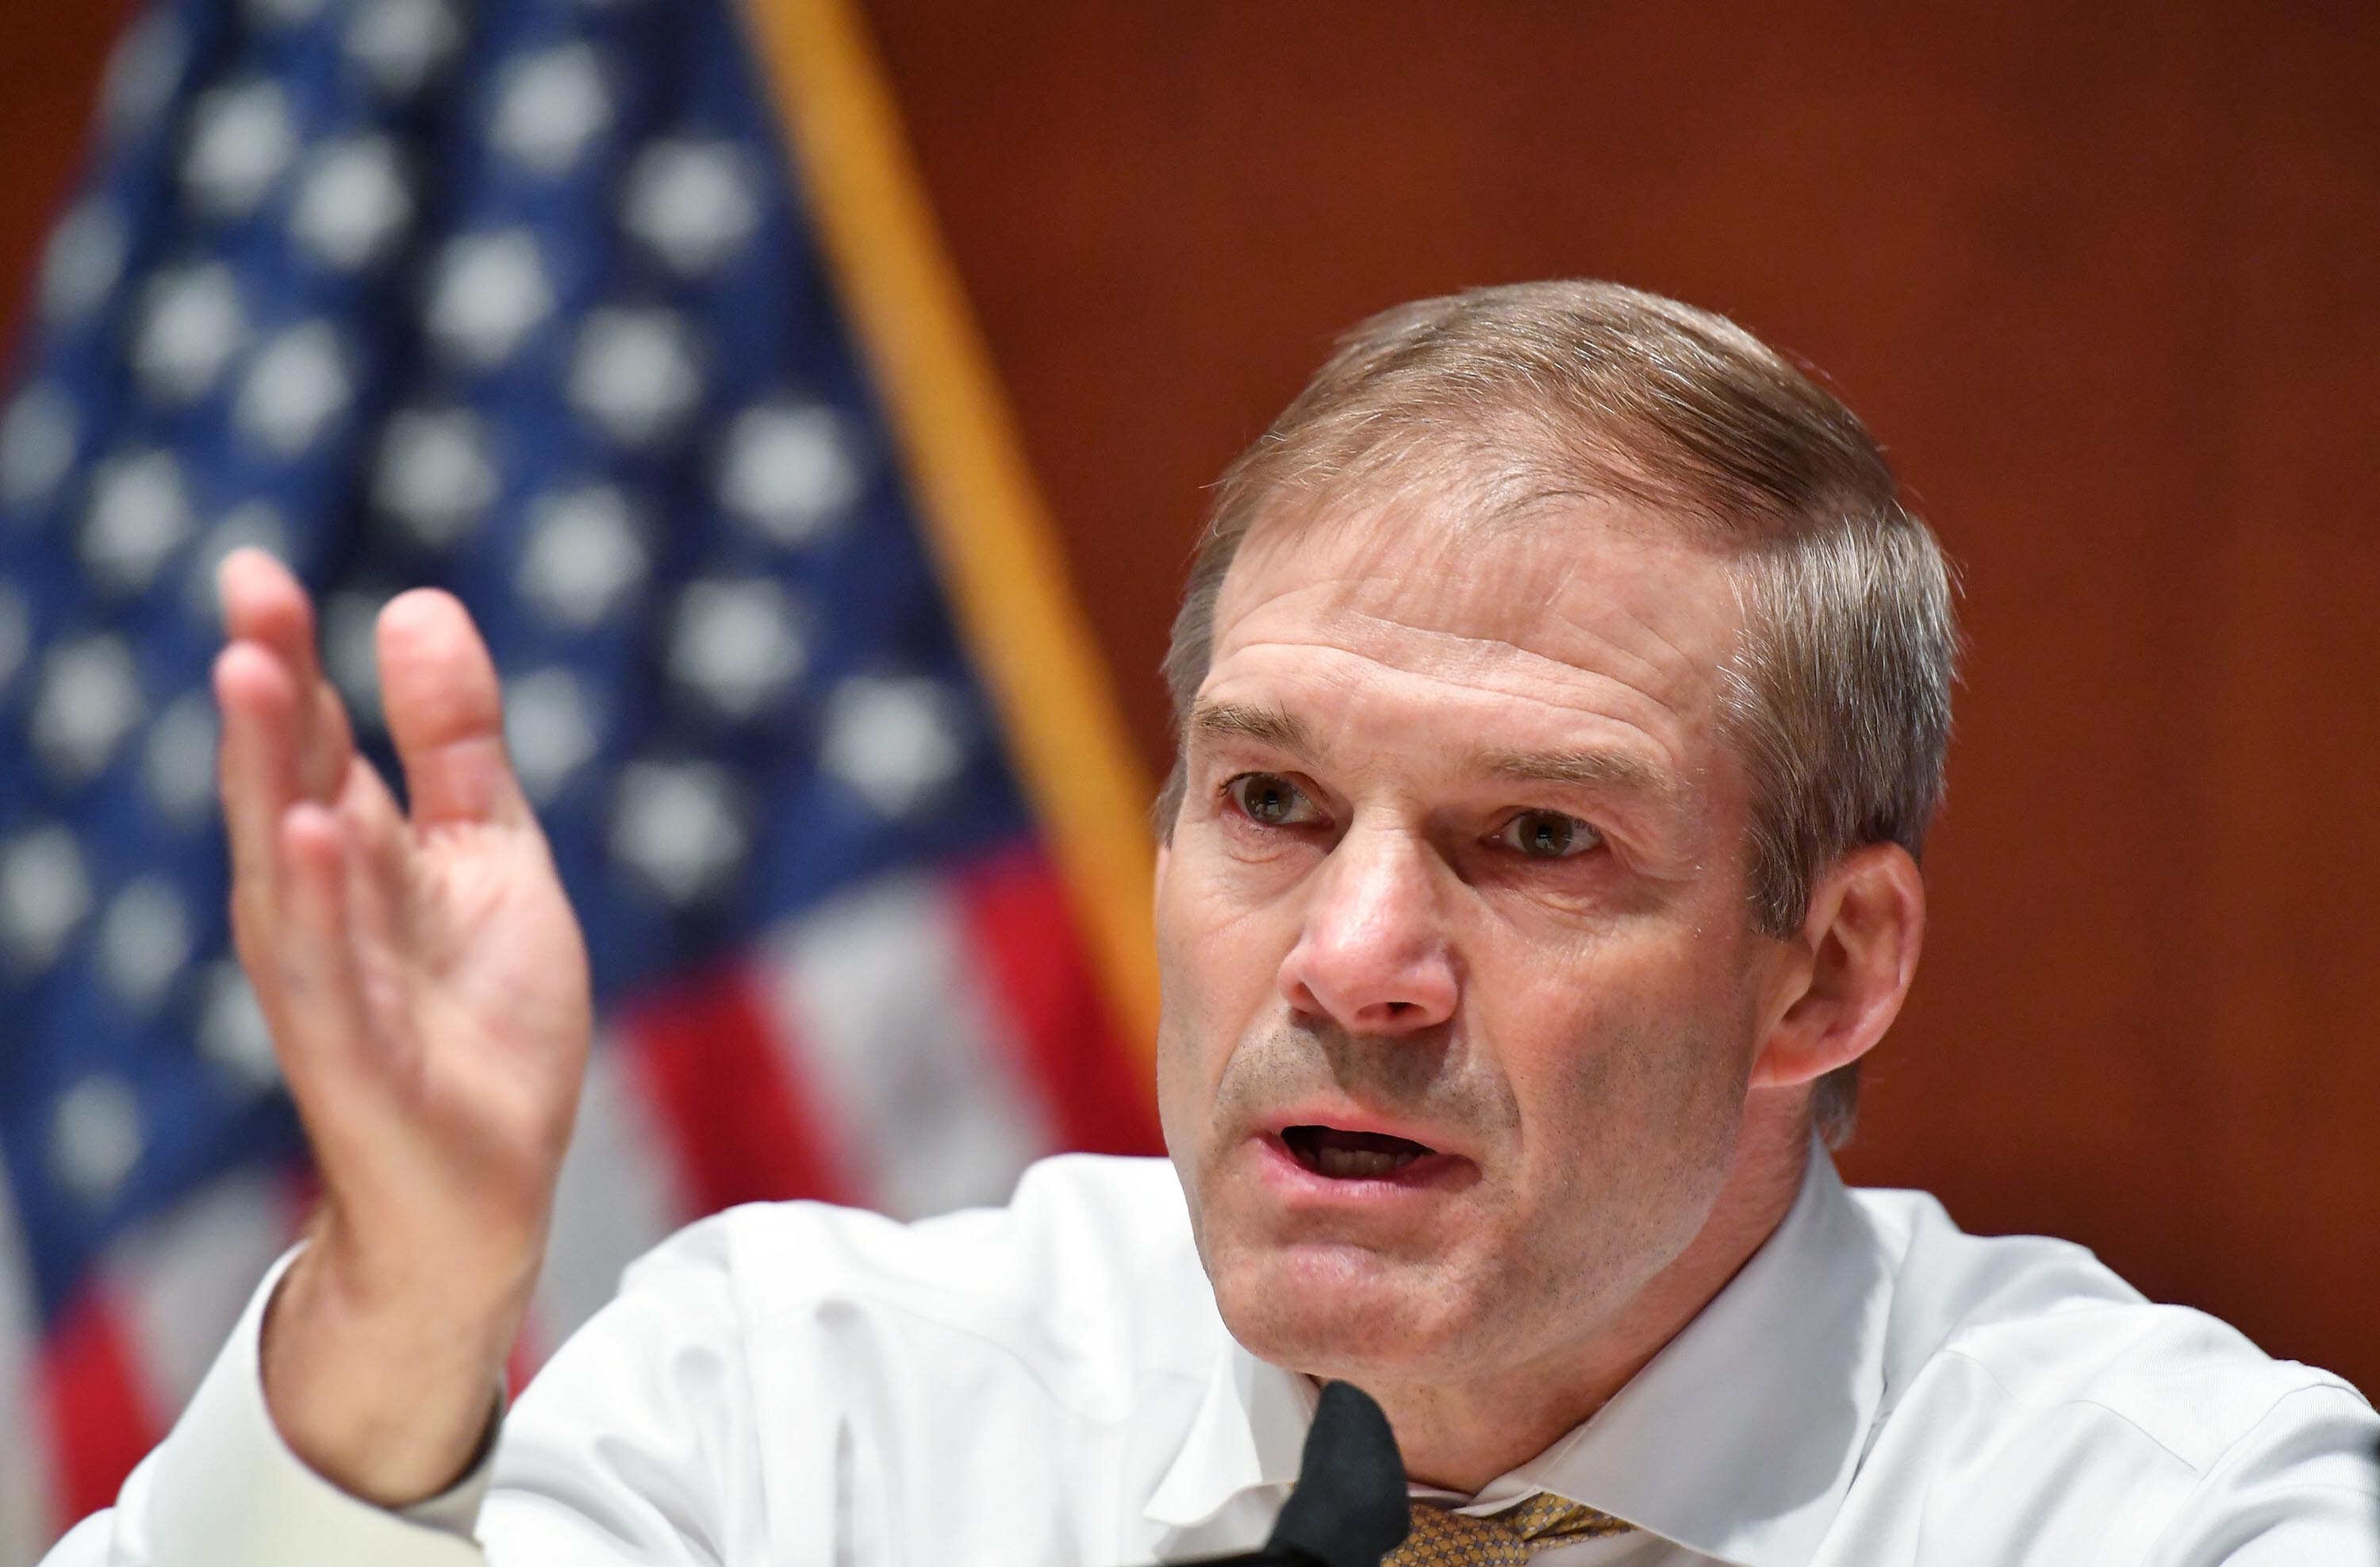 Fact checking Rep. Jordan's claim that Speaker Pelosi was responsible for US Capitol security on January 6